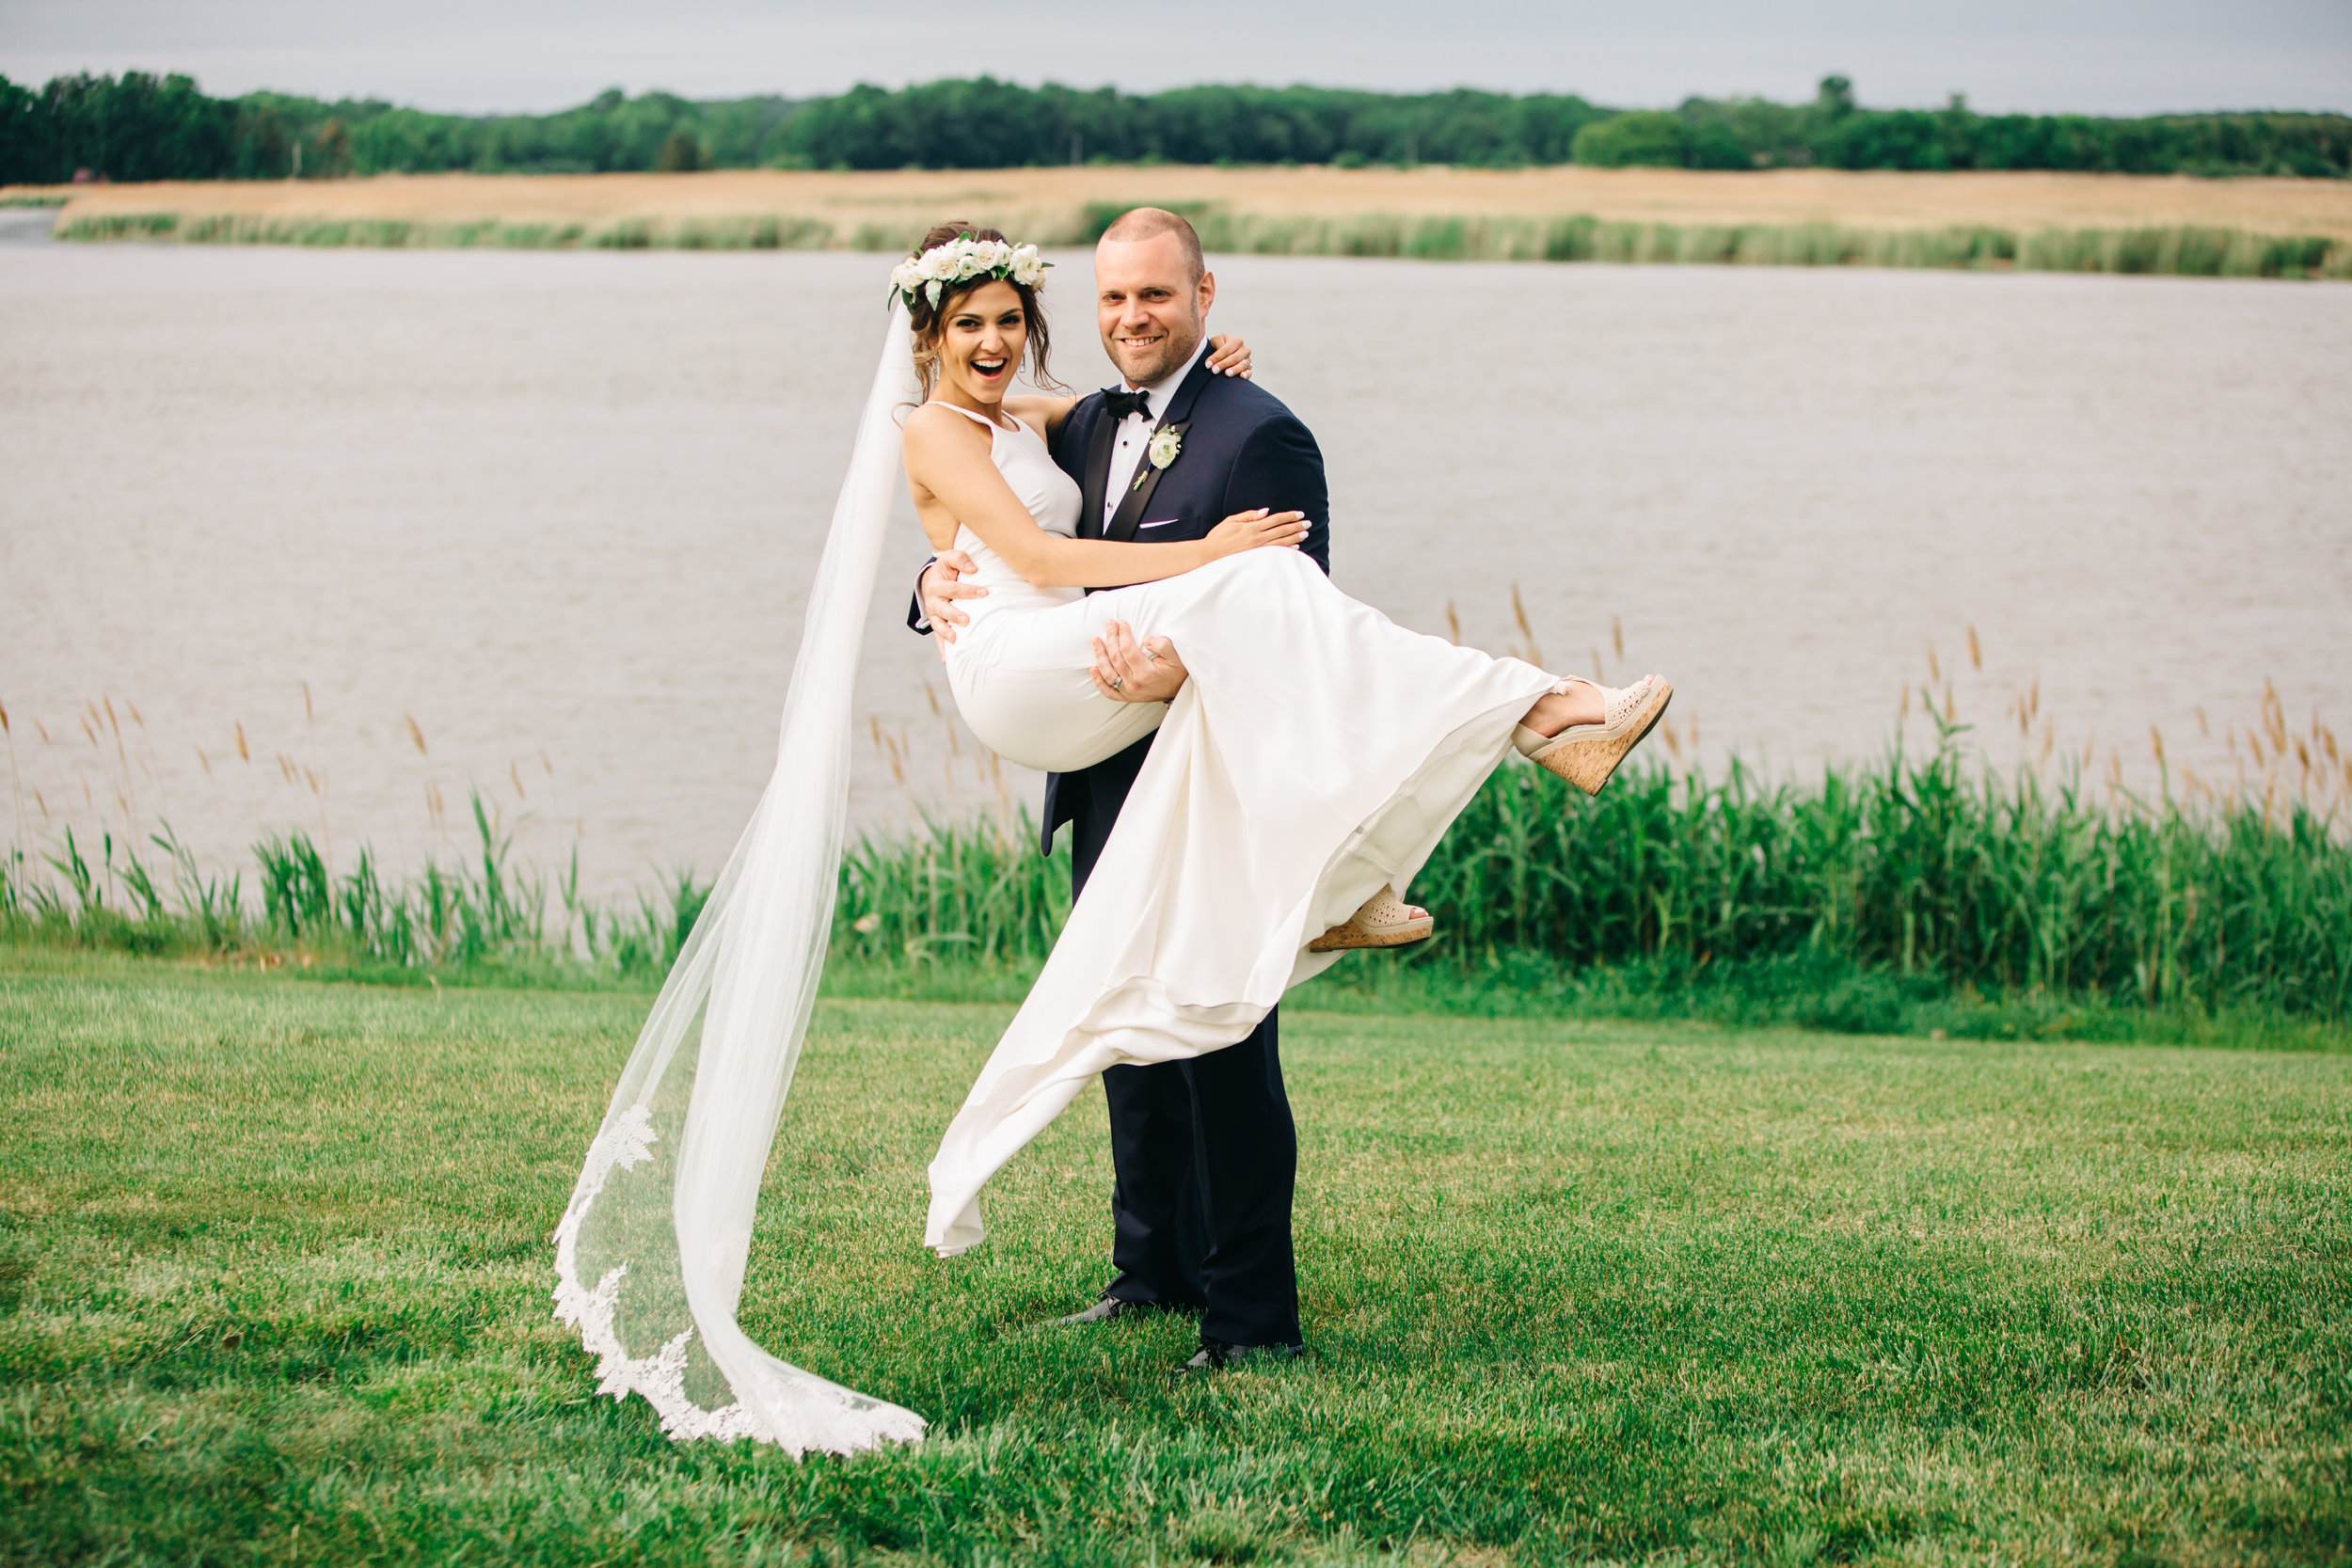 RENEE + JOE - FIVE STARS ALL THE WAY TO THE AISLE. I can say, and my wife would agree, that there is no wedding expense more worthwhile than Caitlin and her team at Clover Event Co. In our case, I believe their all inclusive package probably saved us as much money as we paid out to hire them. They are connected to an incredible network of experienced vendors and venues which makes choosing that much easier.Lastly, and perhaps most importantly, if you're having a difference of opinion with your fiance, there is no better intermediary than having Caitlin assist. We recommend Clover any time we hear of anyone getting engaged. A complete wedding gamechanger.